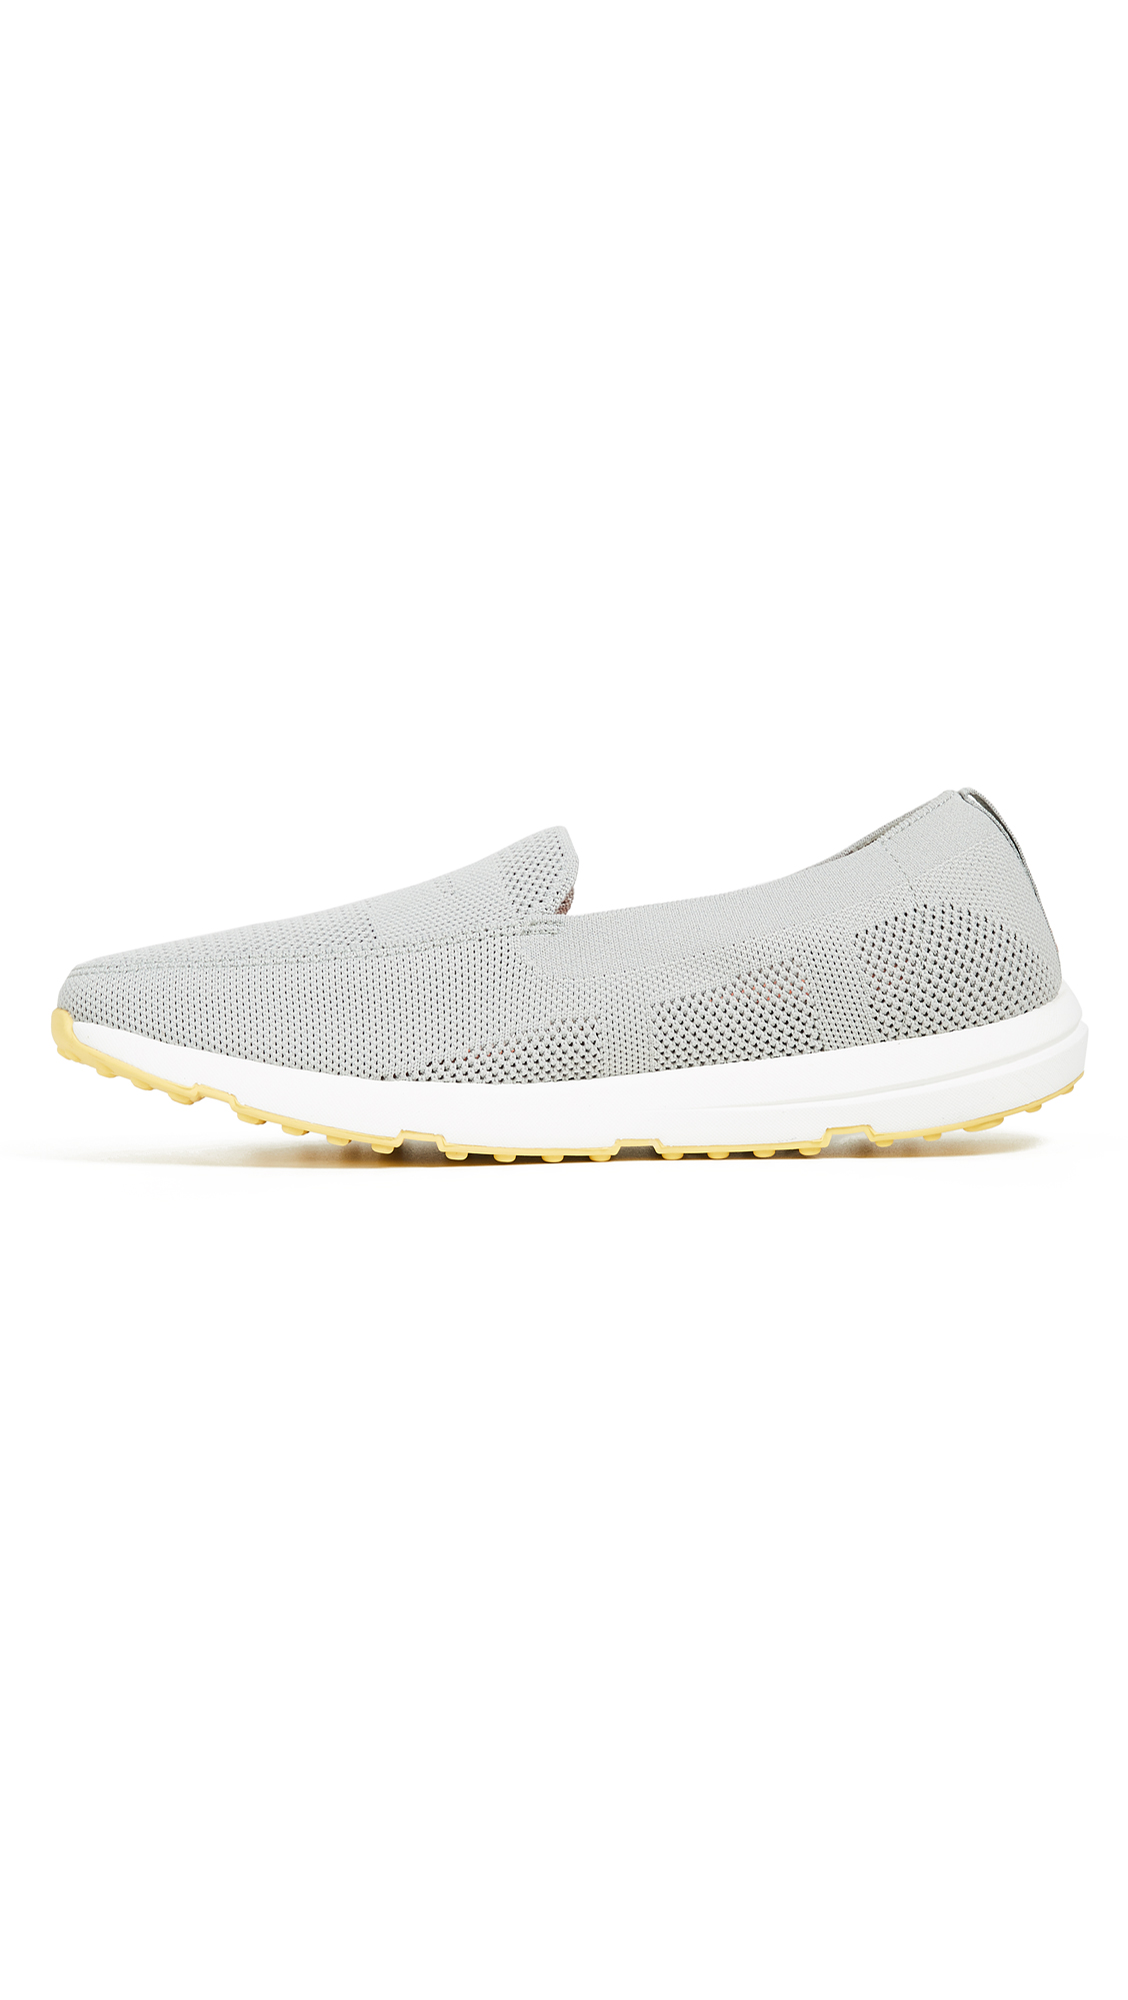 6ace42553d3 SWIMS Breeze Leap Knit Penny Loafers